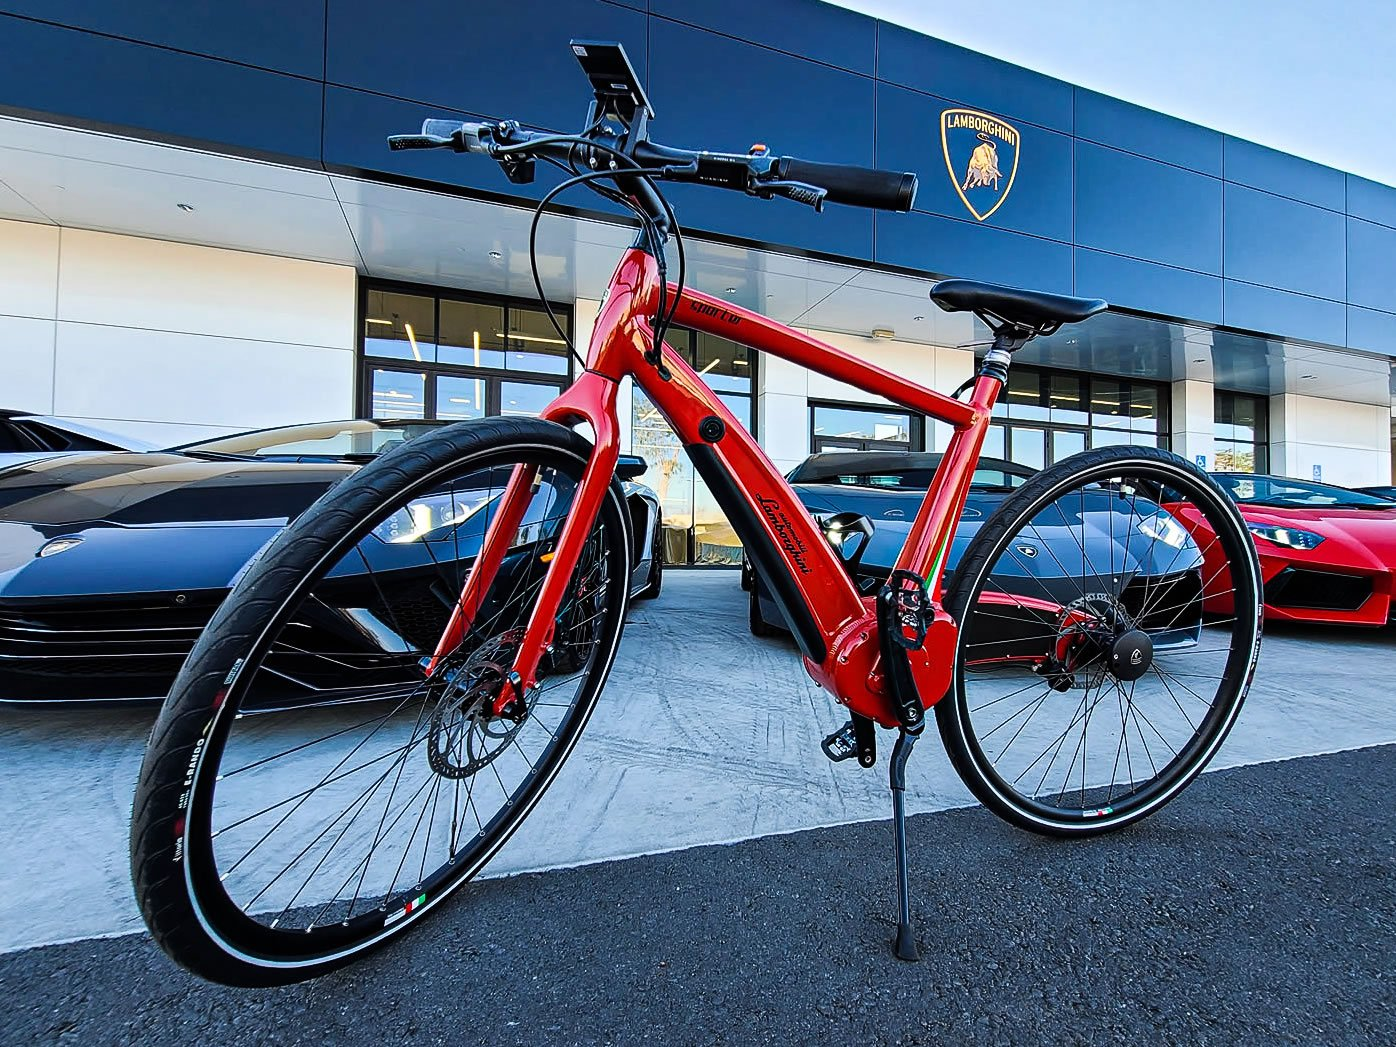 We rode a $18,000 Lamborghini E-Bike and it has changed our perception of bicycles forever